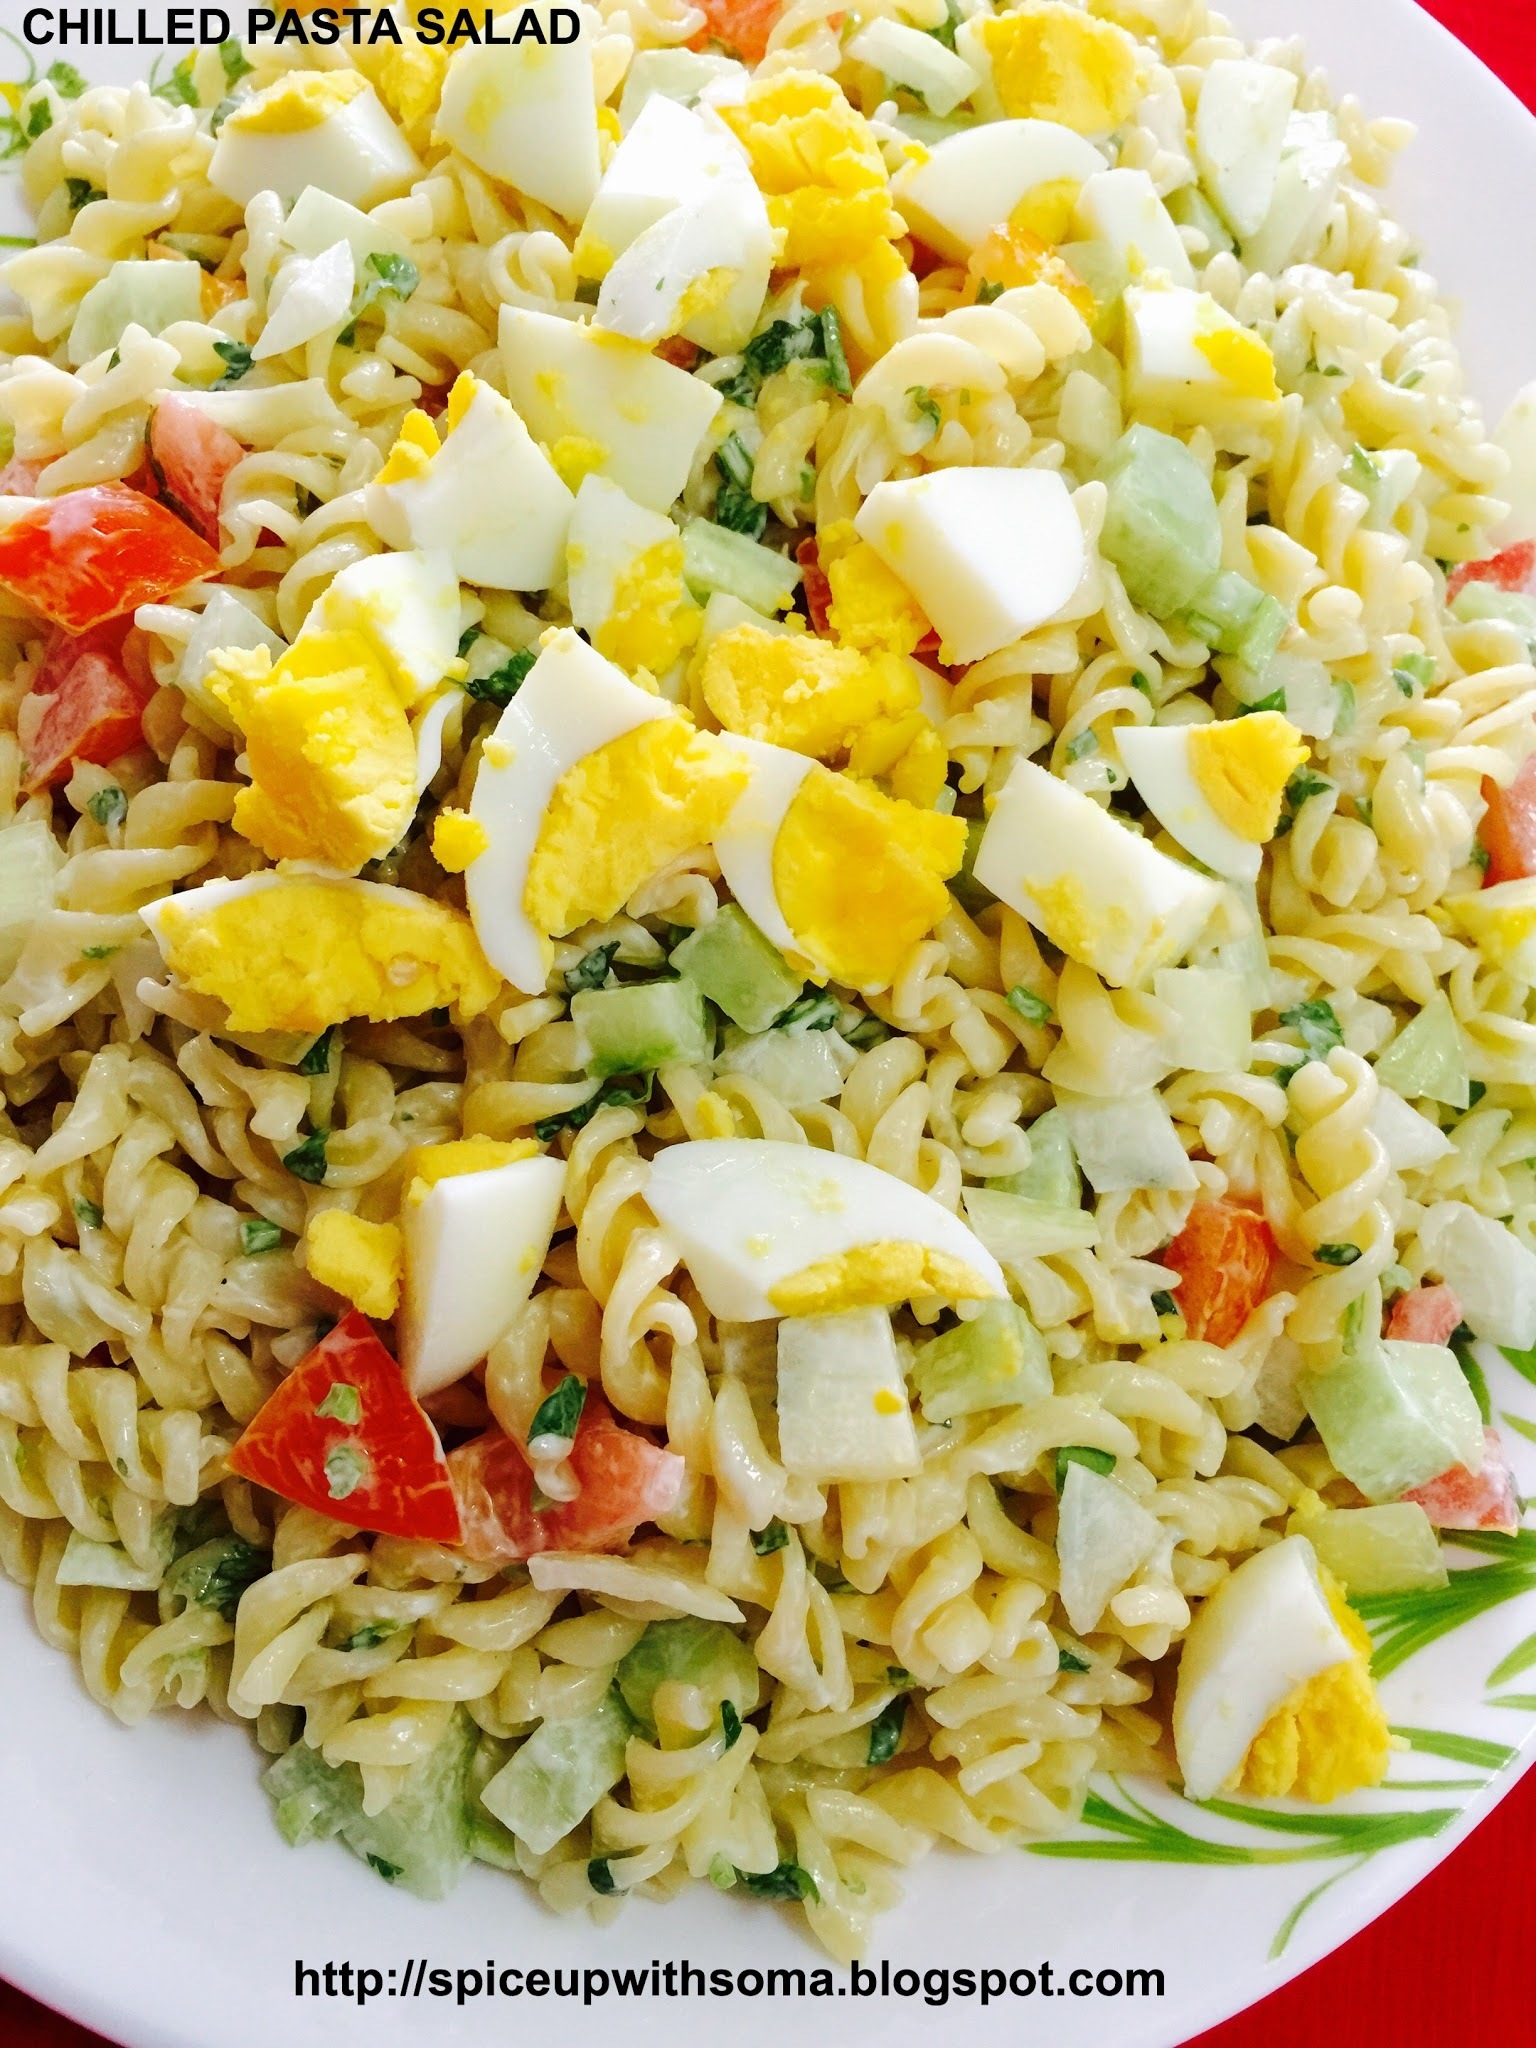 CHILLED PASTA SALAD